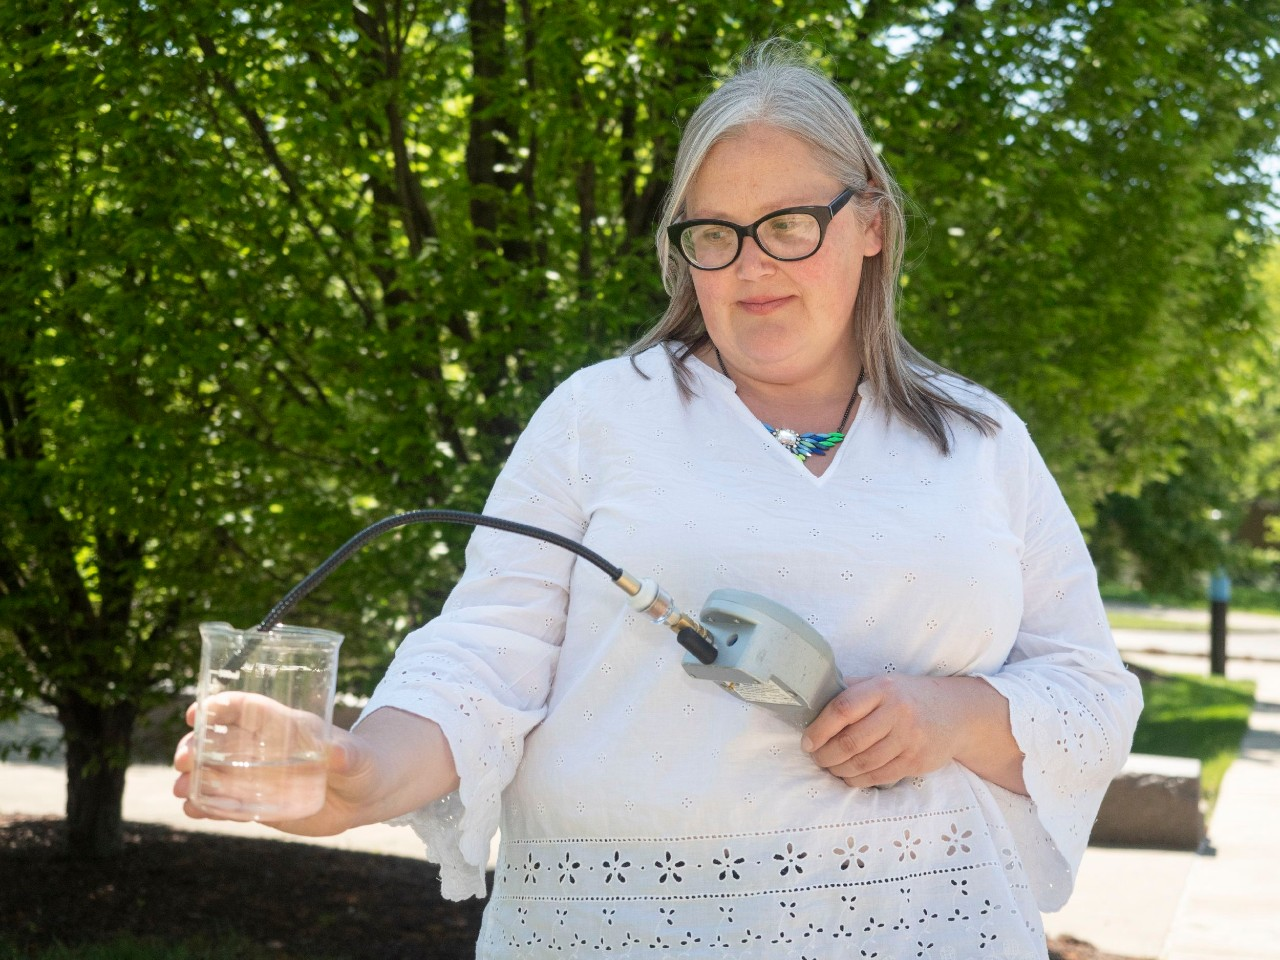 UC associate professor Amy Townsend-Small samples methane in a beaker of water.